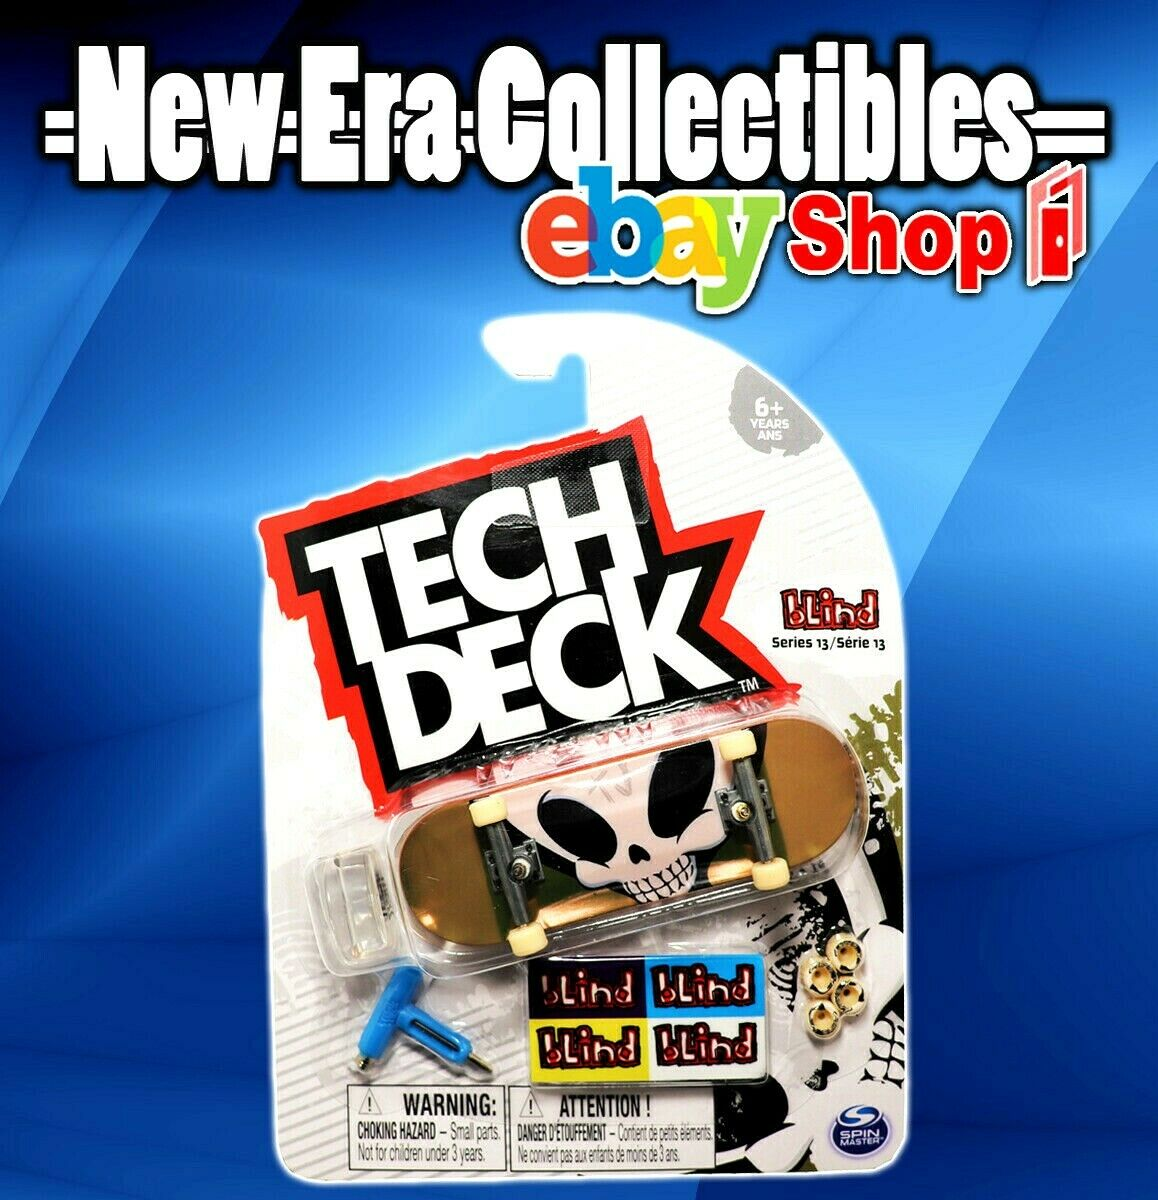 Tech Deck Series 13 Blind Skateboards Fingerboard 96mm Spin Master 778988191323 Ebay